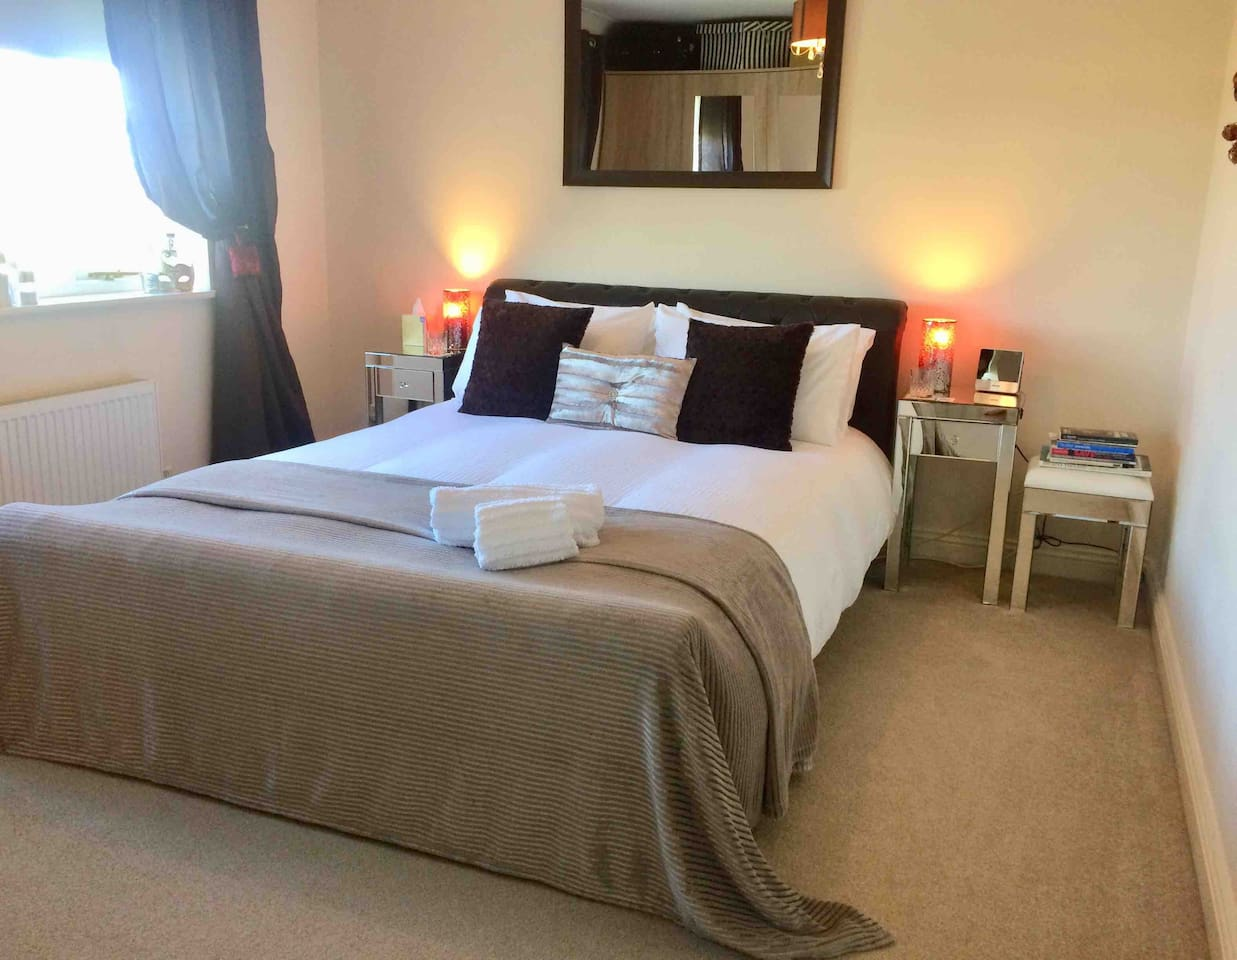 King sized bed with comfortable memory foam mattress. Views over the open countryside. Black out blinds. Peaceful. With no light pollution guests can use the telescope to view stars. Free Wifi & information in the room to plan your days sightseeing